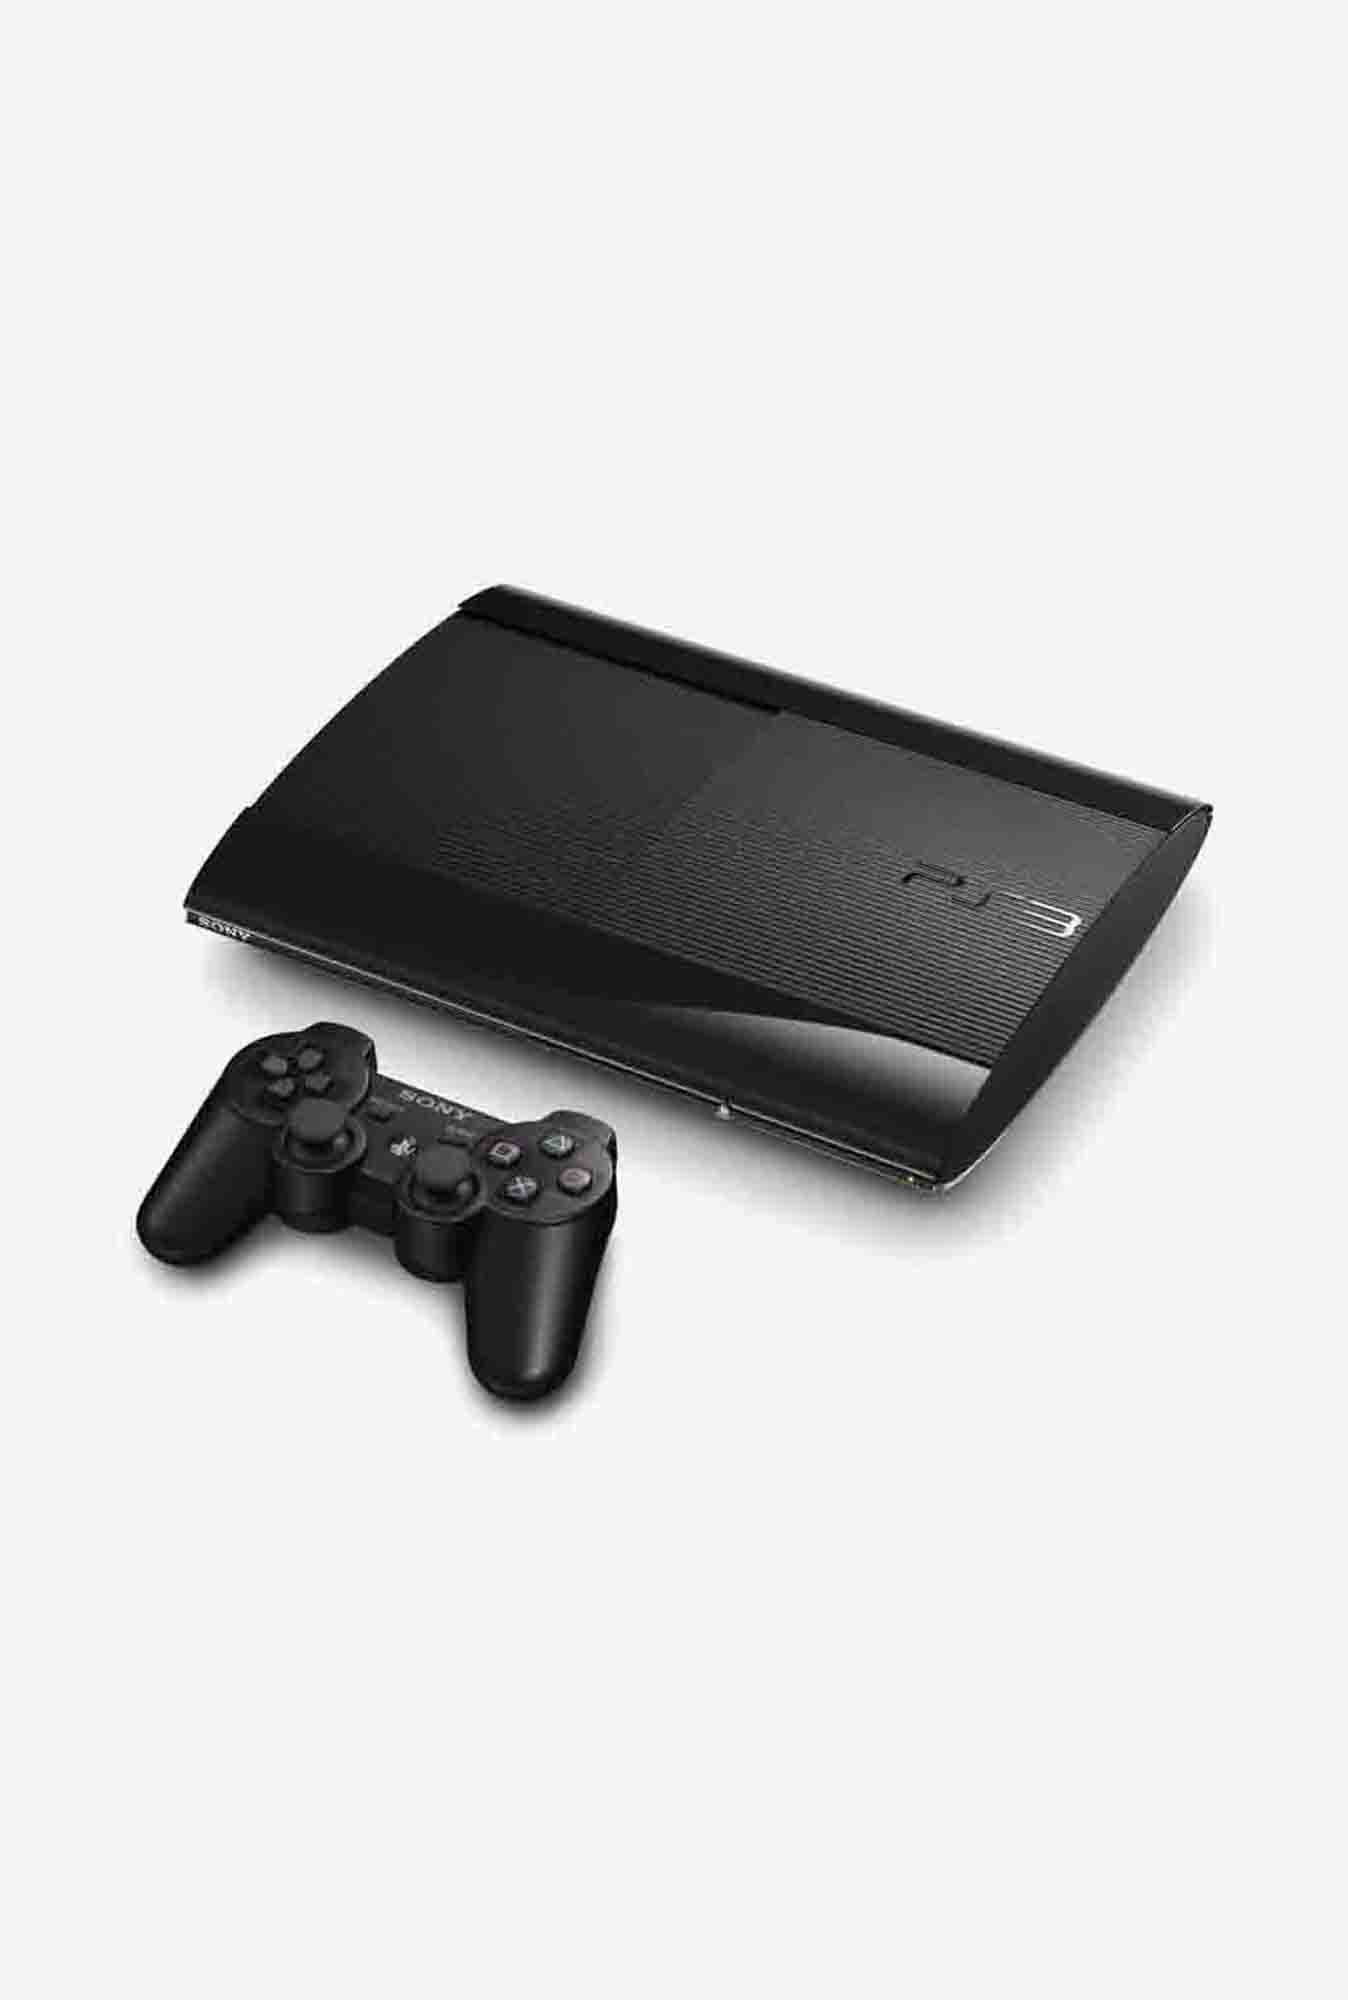 Sony Entertainment PlayStation 3 12GB Game Console Black